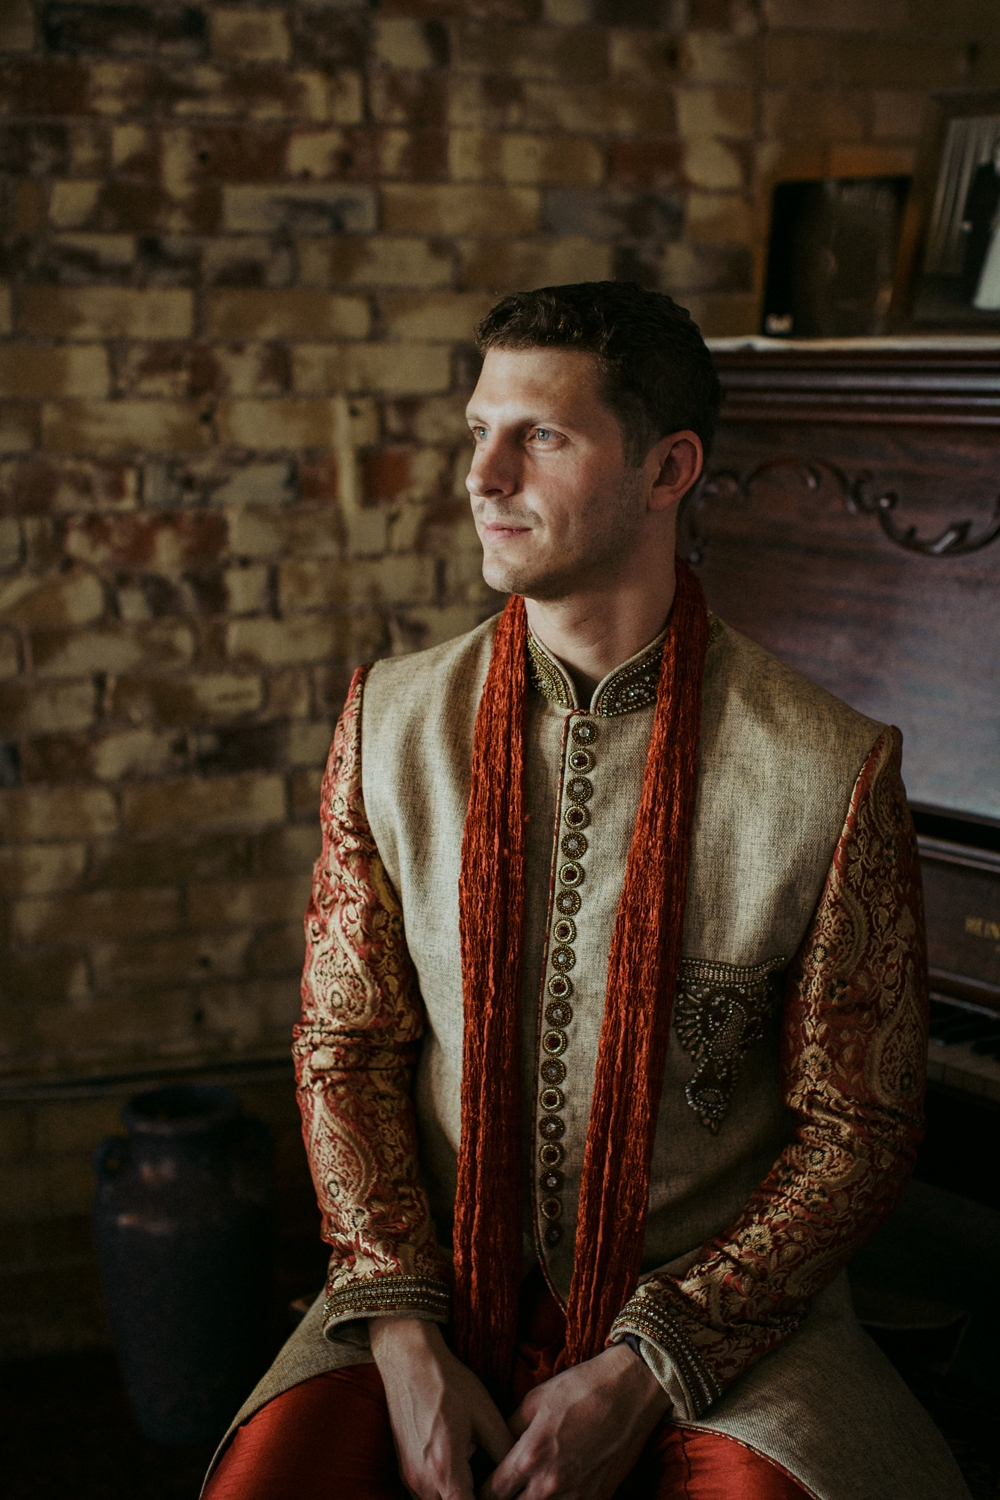 Groom in Indian wedding at Ben McNally bookstore.